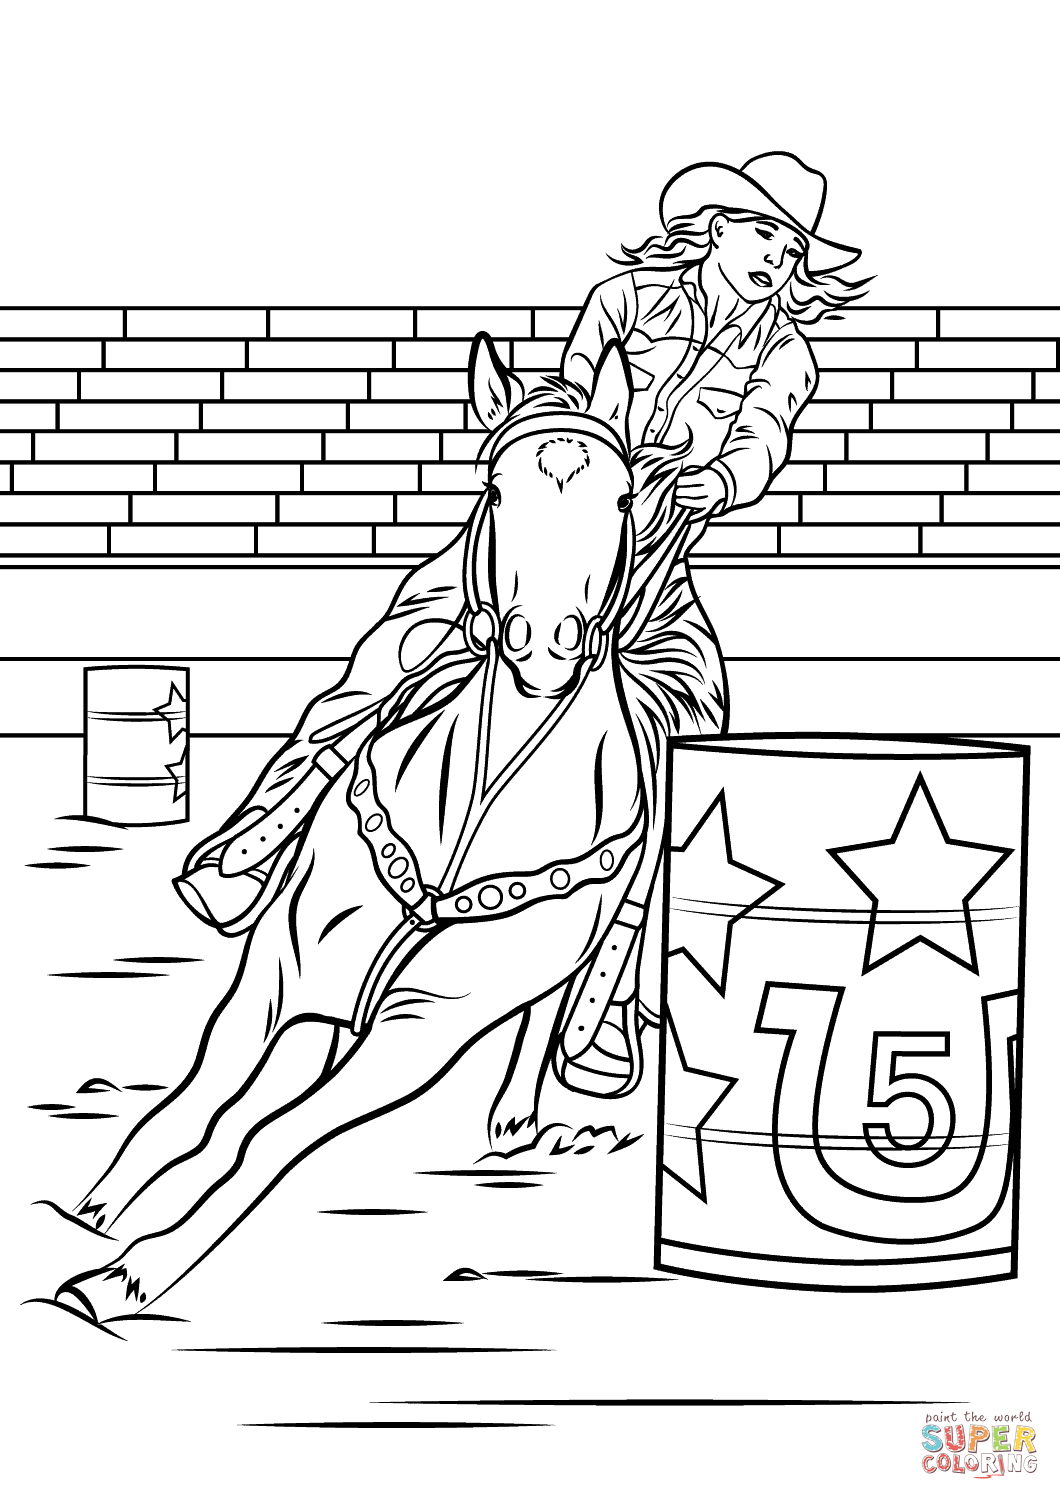 Clipart of girl riding a paint pony barrel racing svg transparent stock Horse Barrel Racing coloring page | Free Printable Coloring Pages svg transparent stock